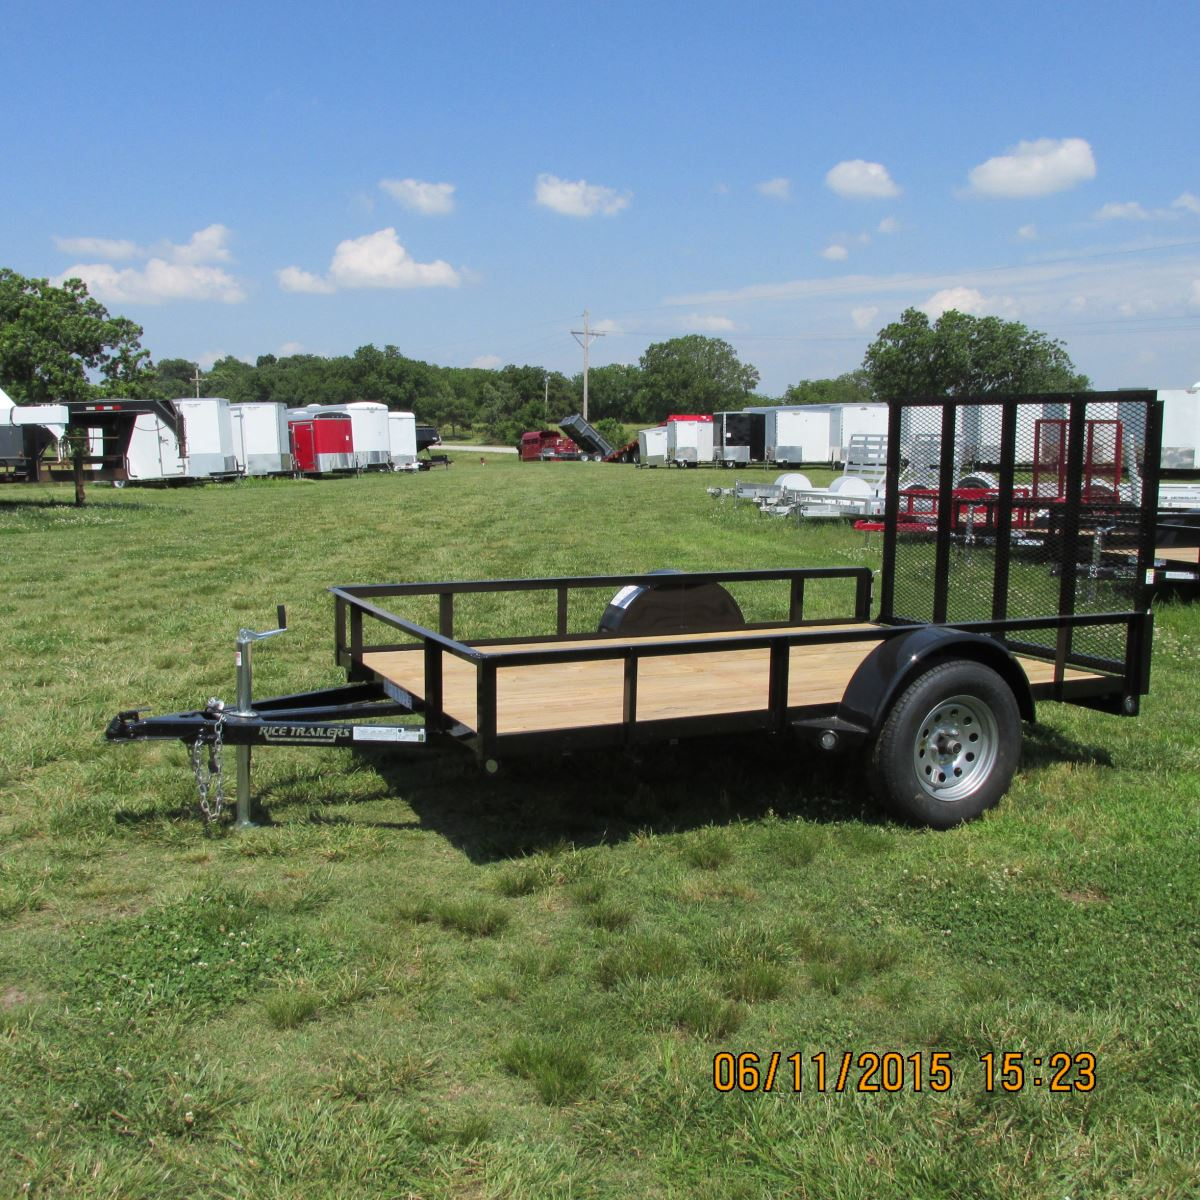 Wiring Diagram For Wilson Cattle Trailer : Eby trailer wiring diagram circuit maker